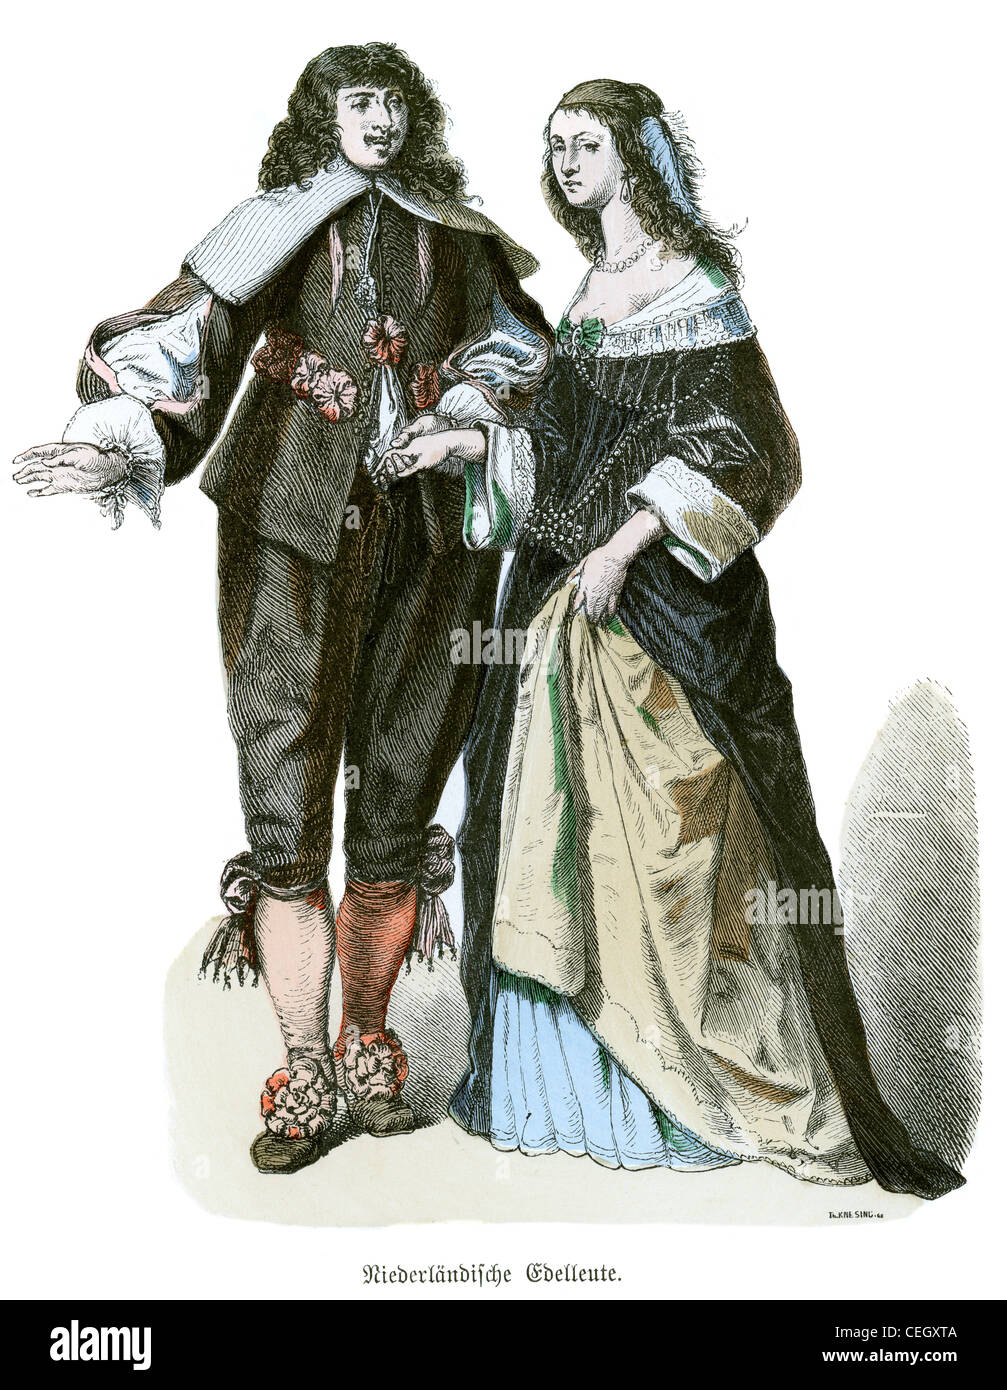 A dutch noble man and woman in the fashion of the 17th